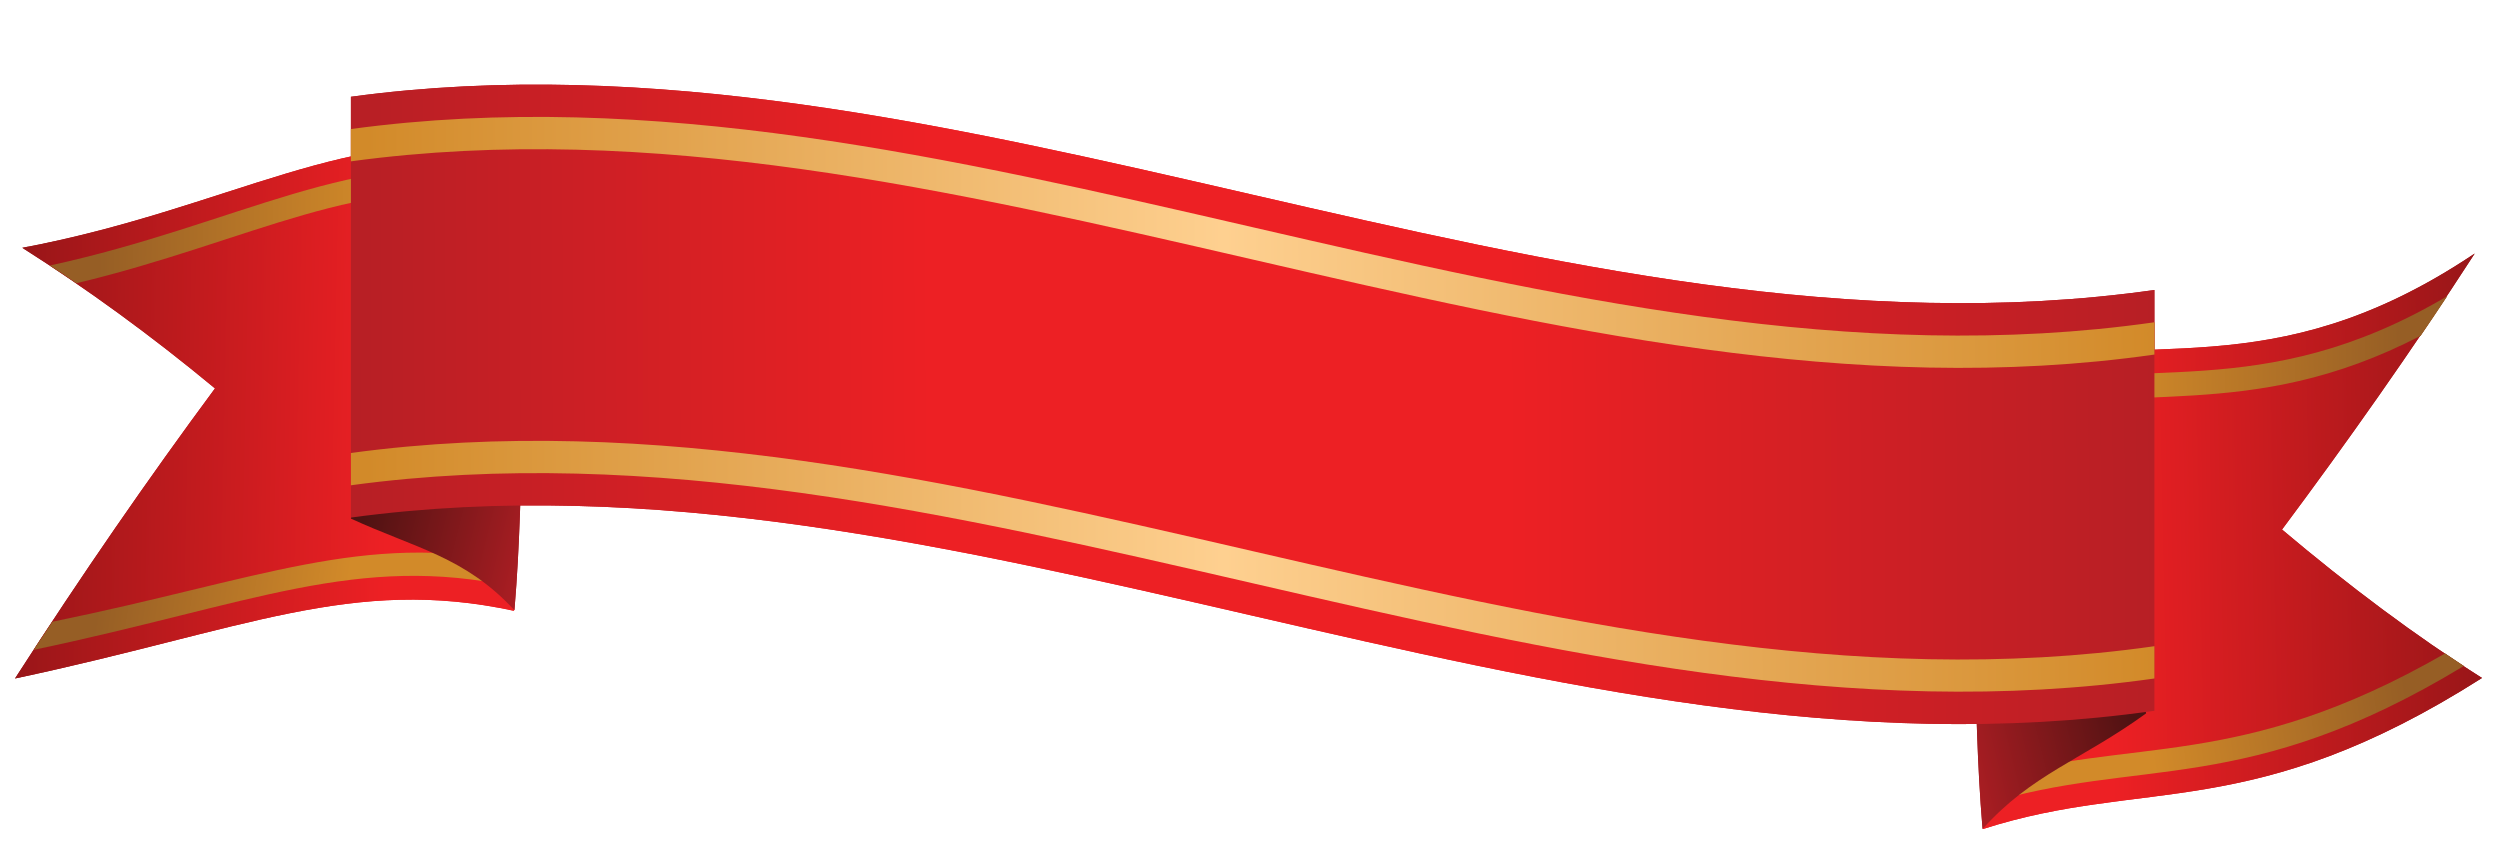 fiocco rosso png